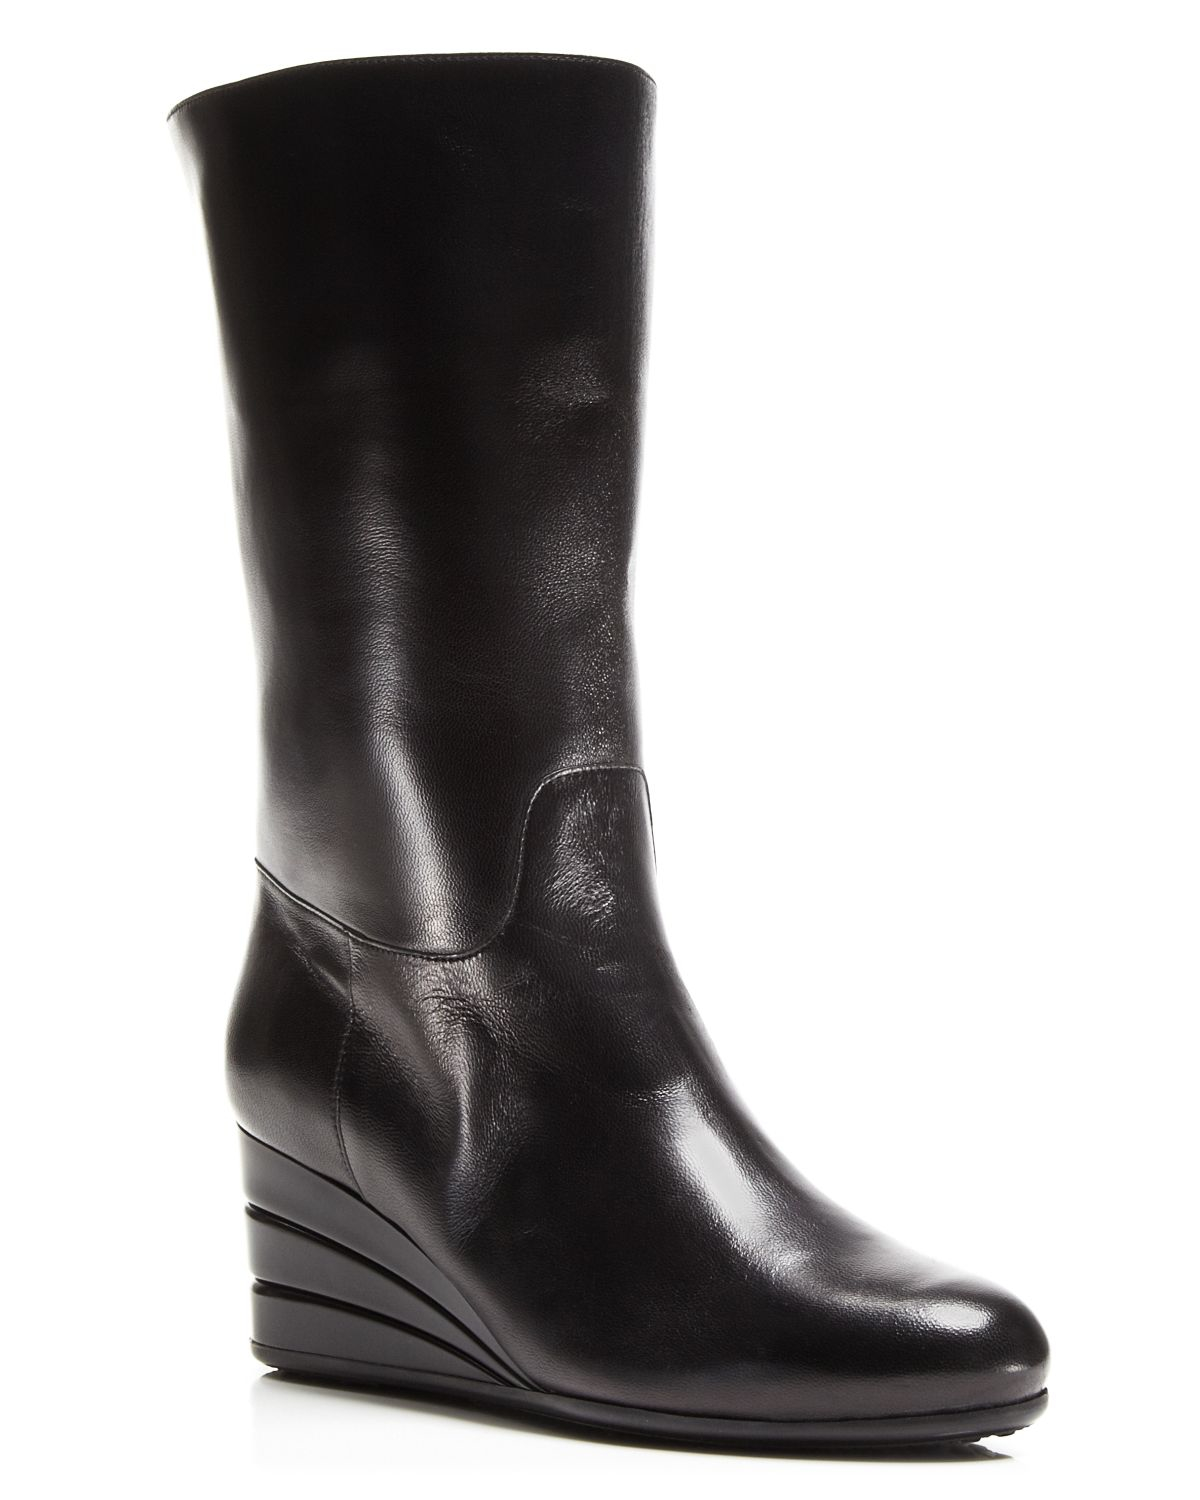 ferragamo my winter leather wedge boots in black lyst